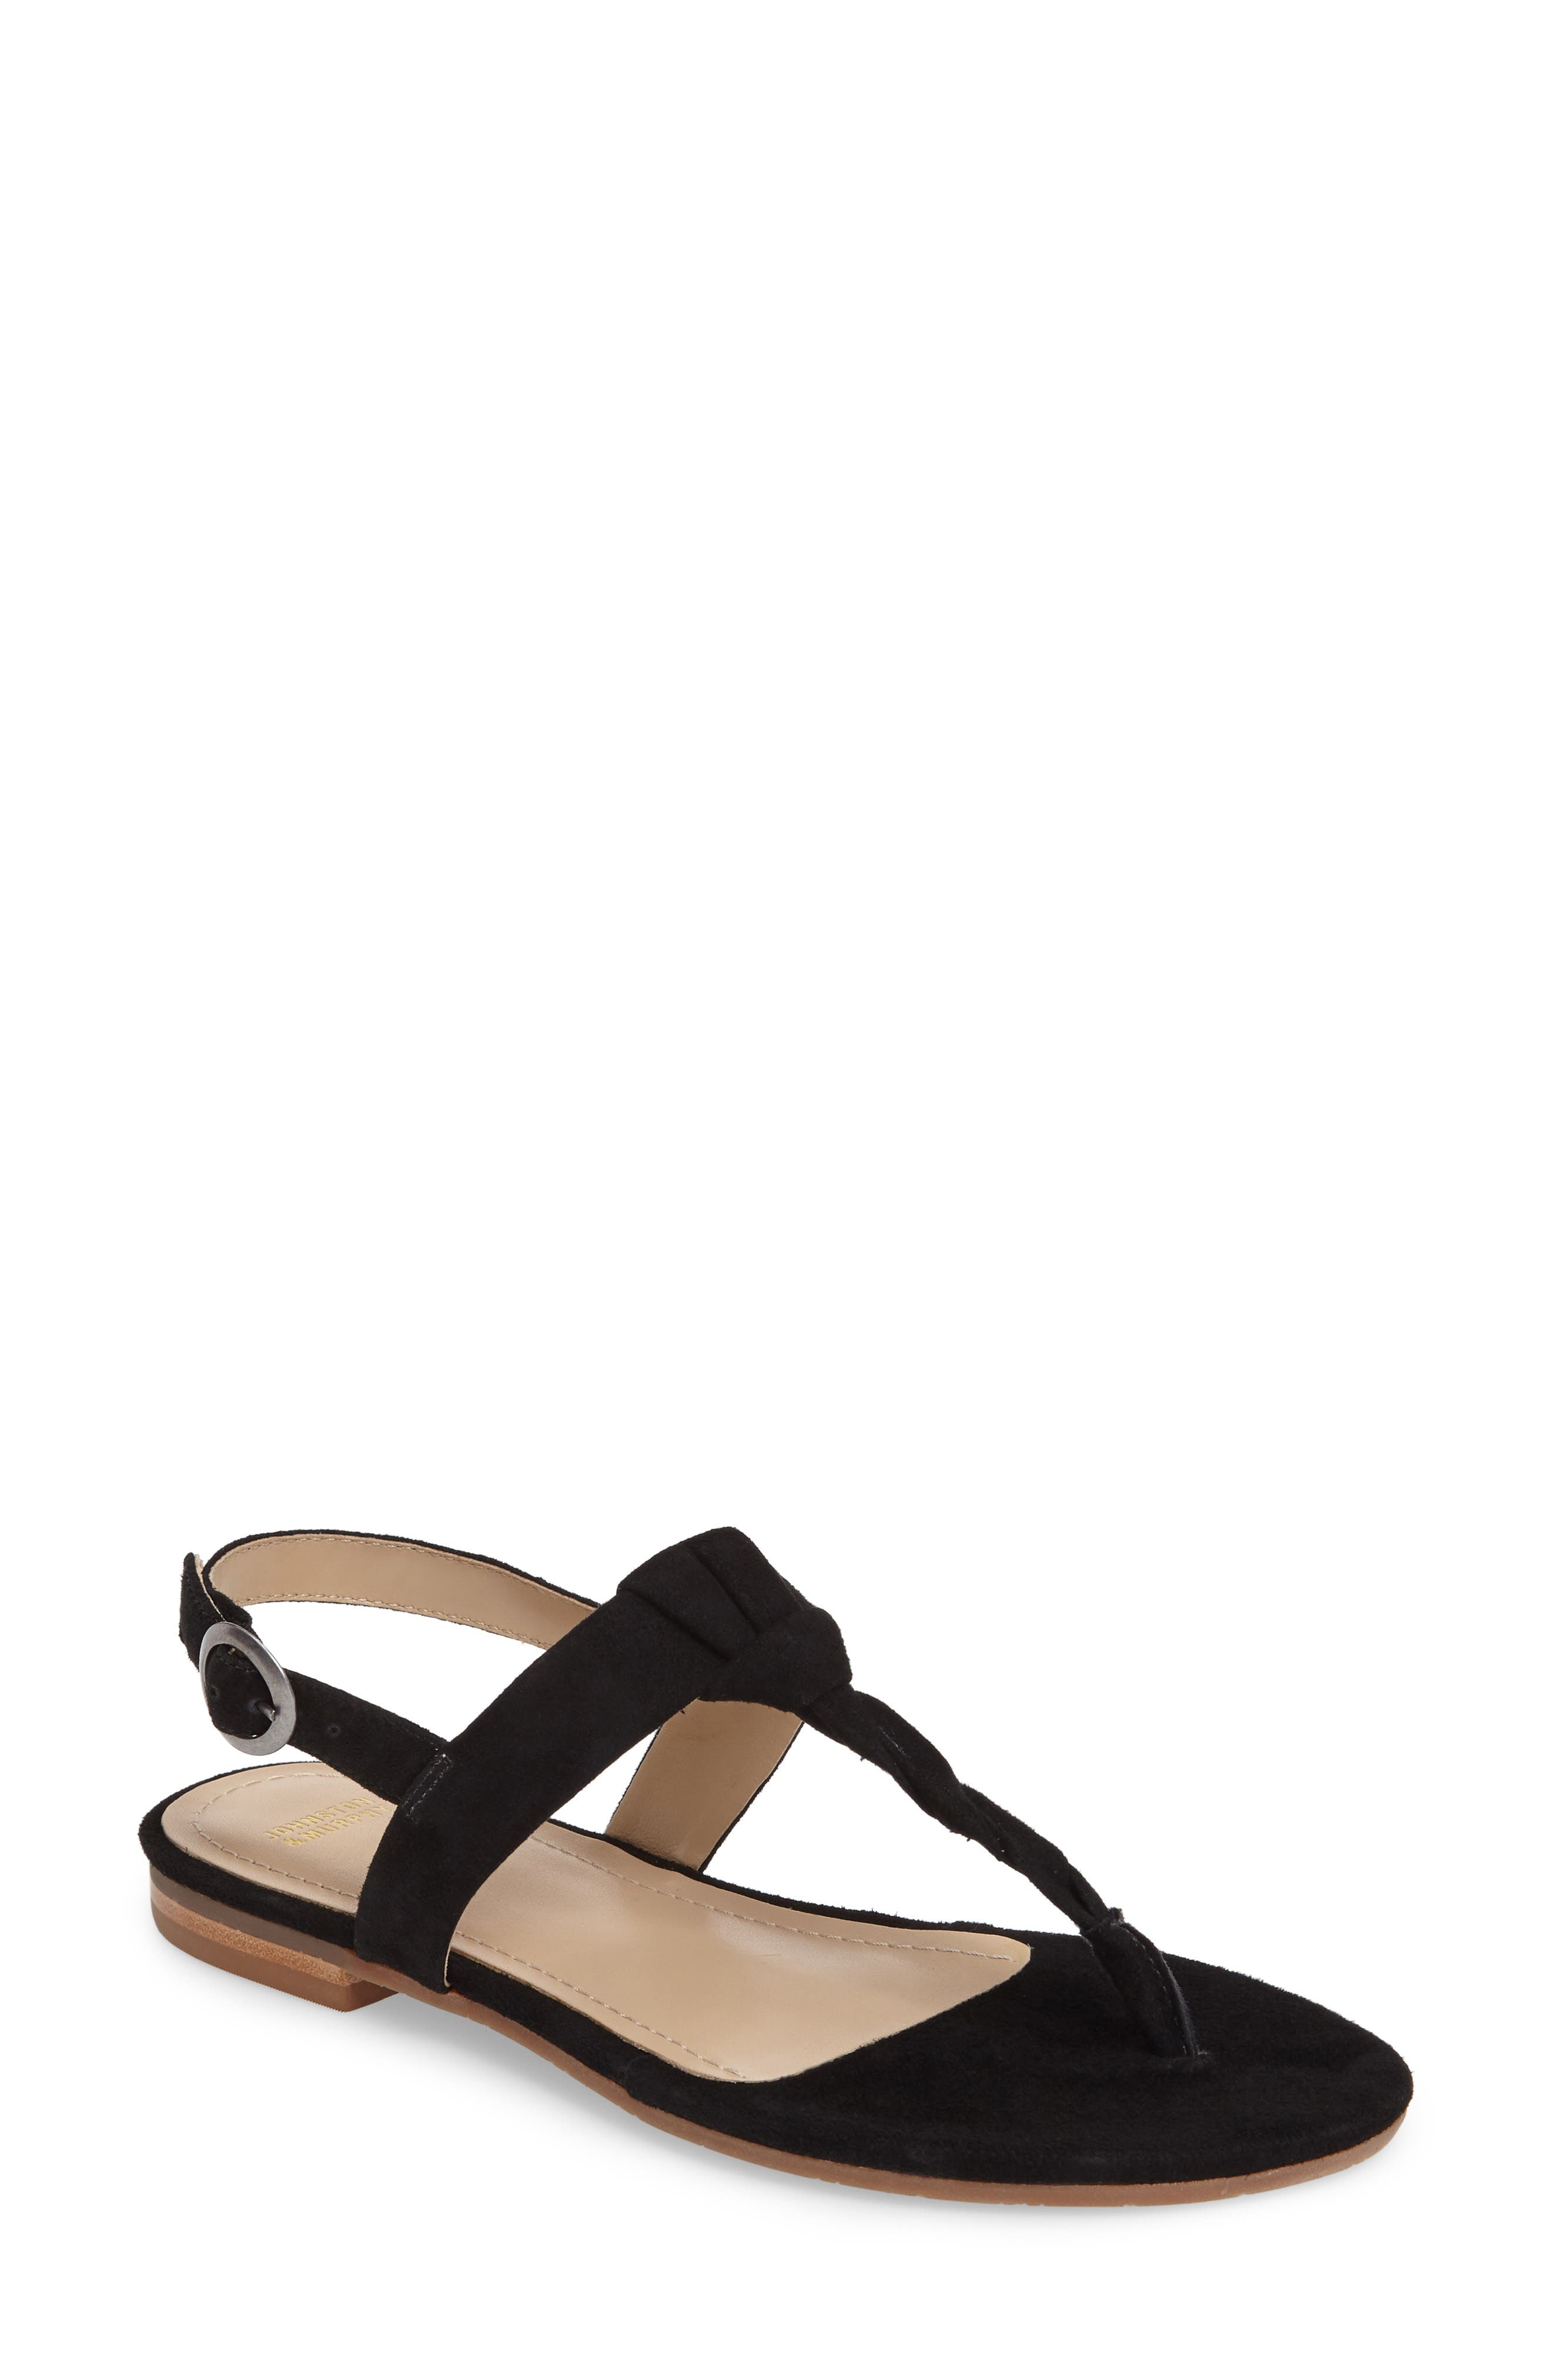 Holly Twisted T-Strap Sandal,                             Main thumbnail 1, color,                             001